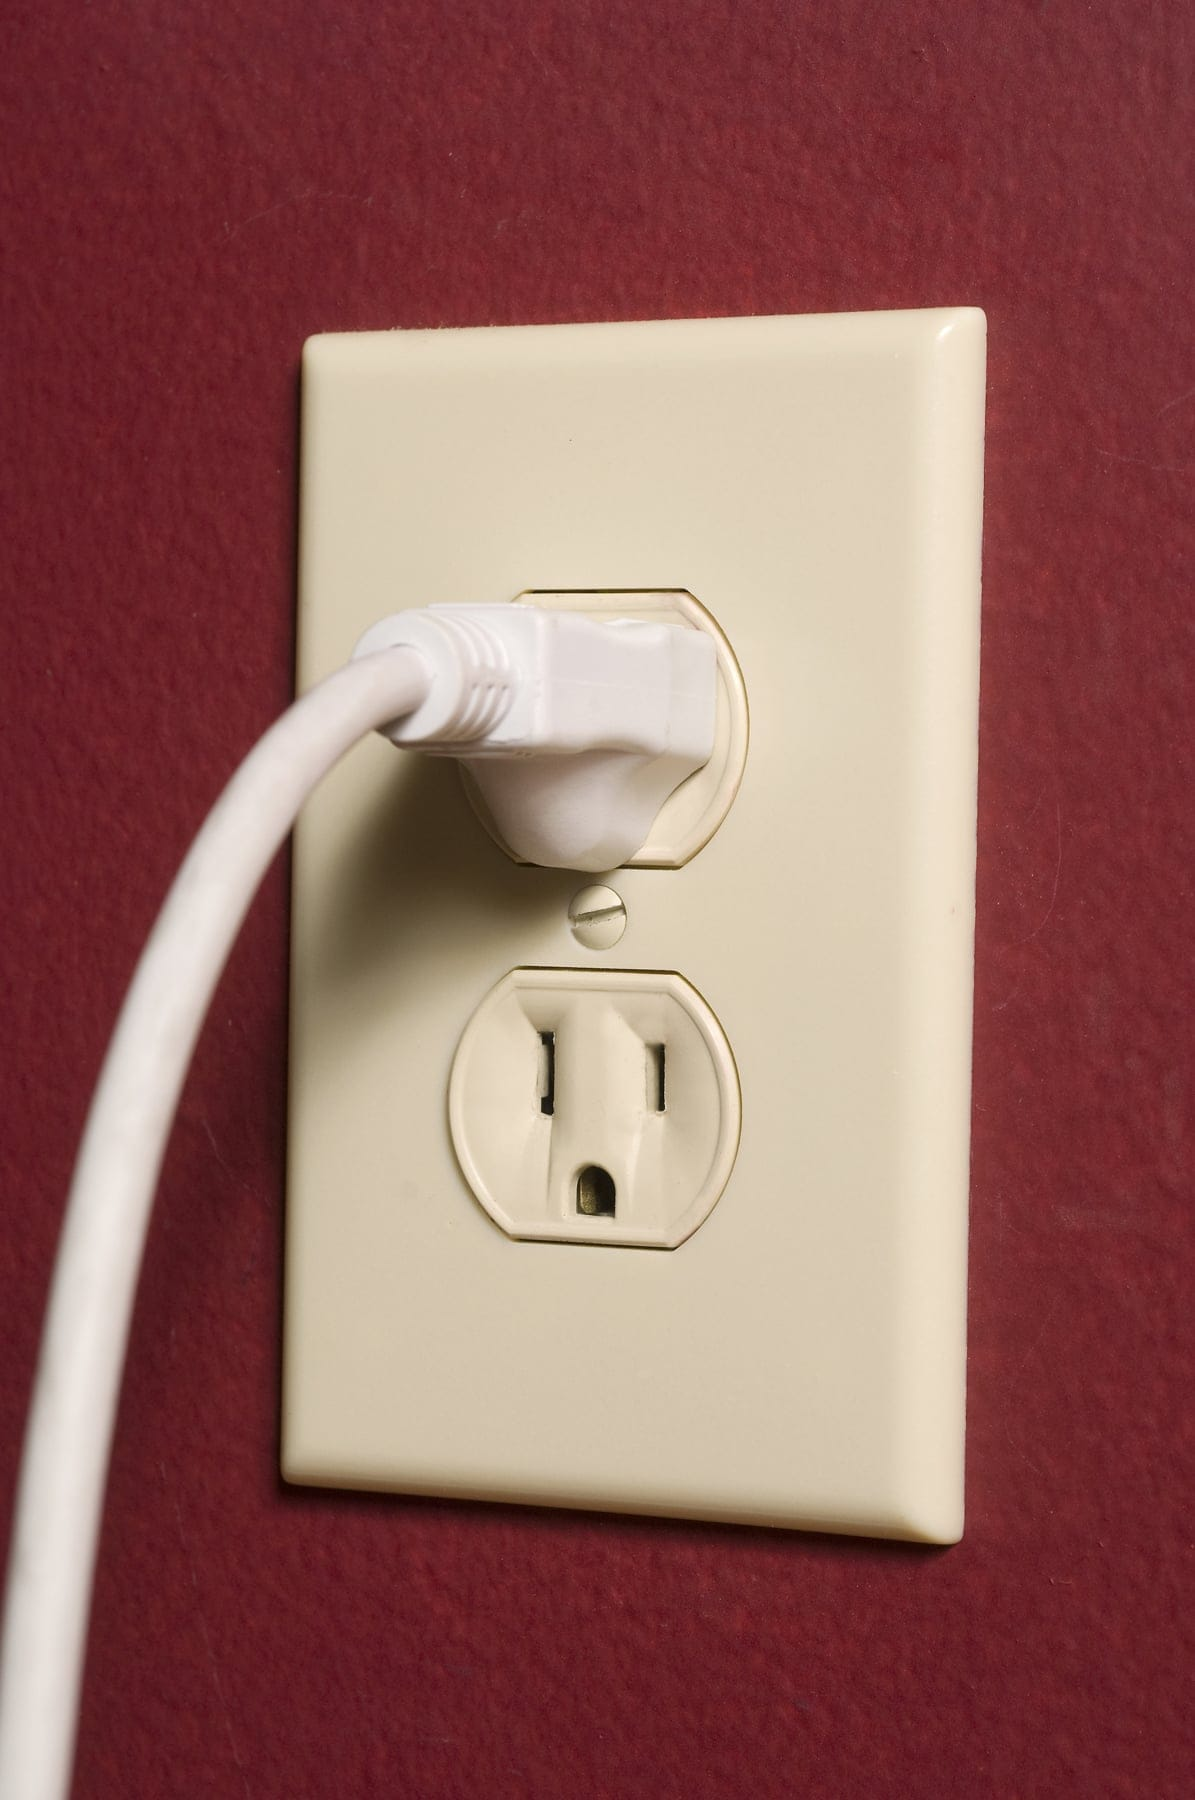 hight resolution of close up of outlet 3 prong cord fully inserted in top socket